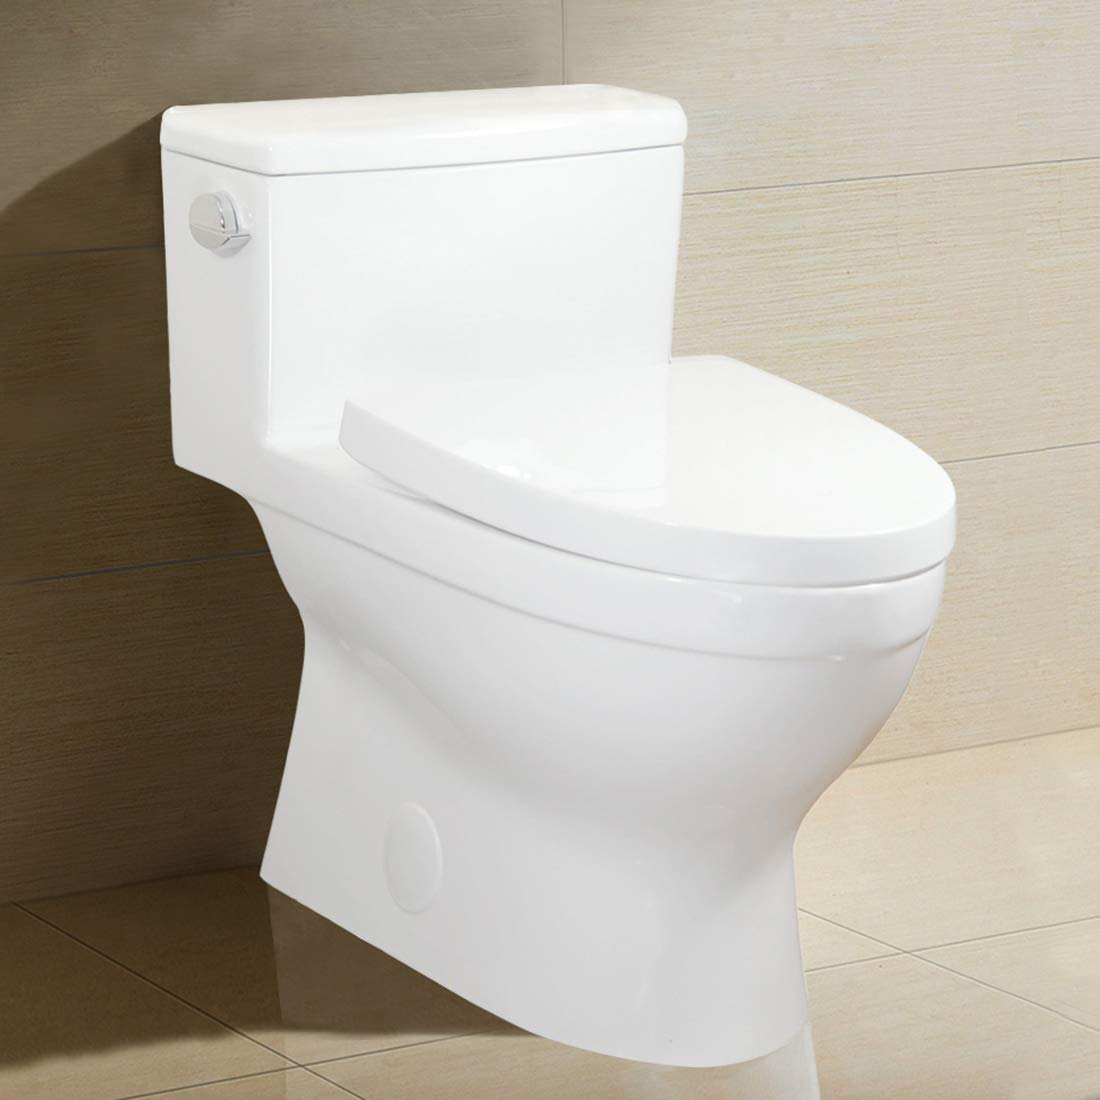 Winzo WZ5024 Elongated One-Piece Toilet, High Efficiency Single Side Flush 1.28 GPF,Comfort Height,Skirted Modern Design with Soft Closing Seat, WaterSense Porcelain White by WinZo